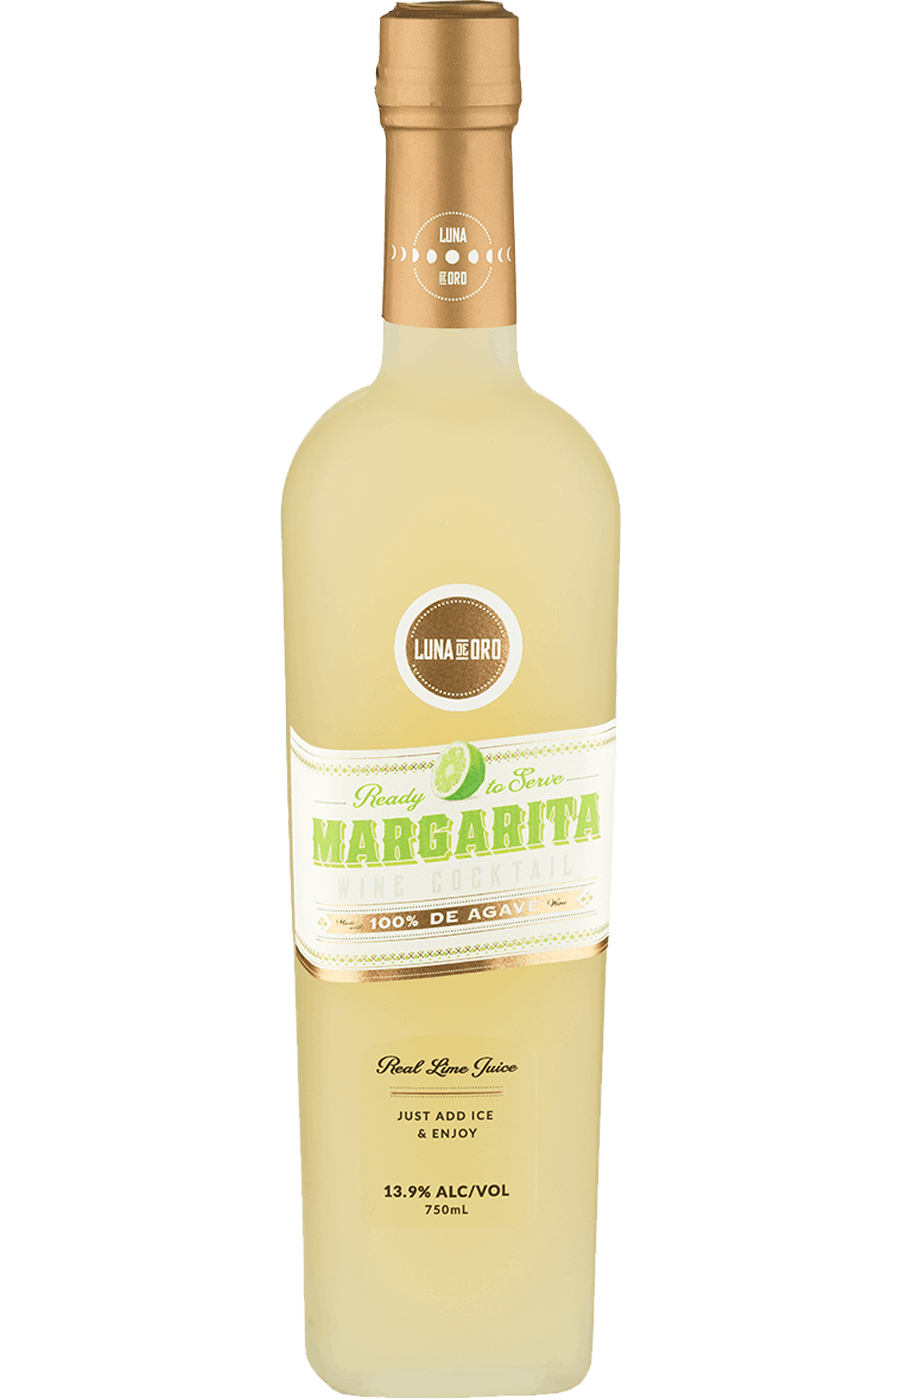 luna de oro margarita 750mL